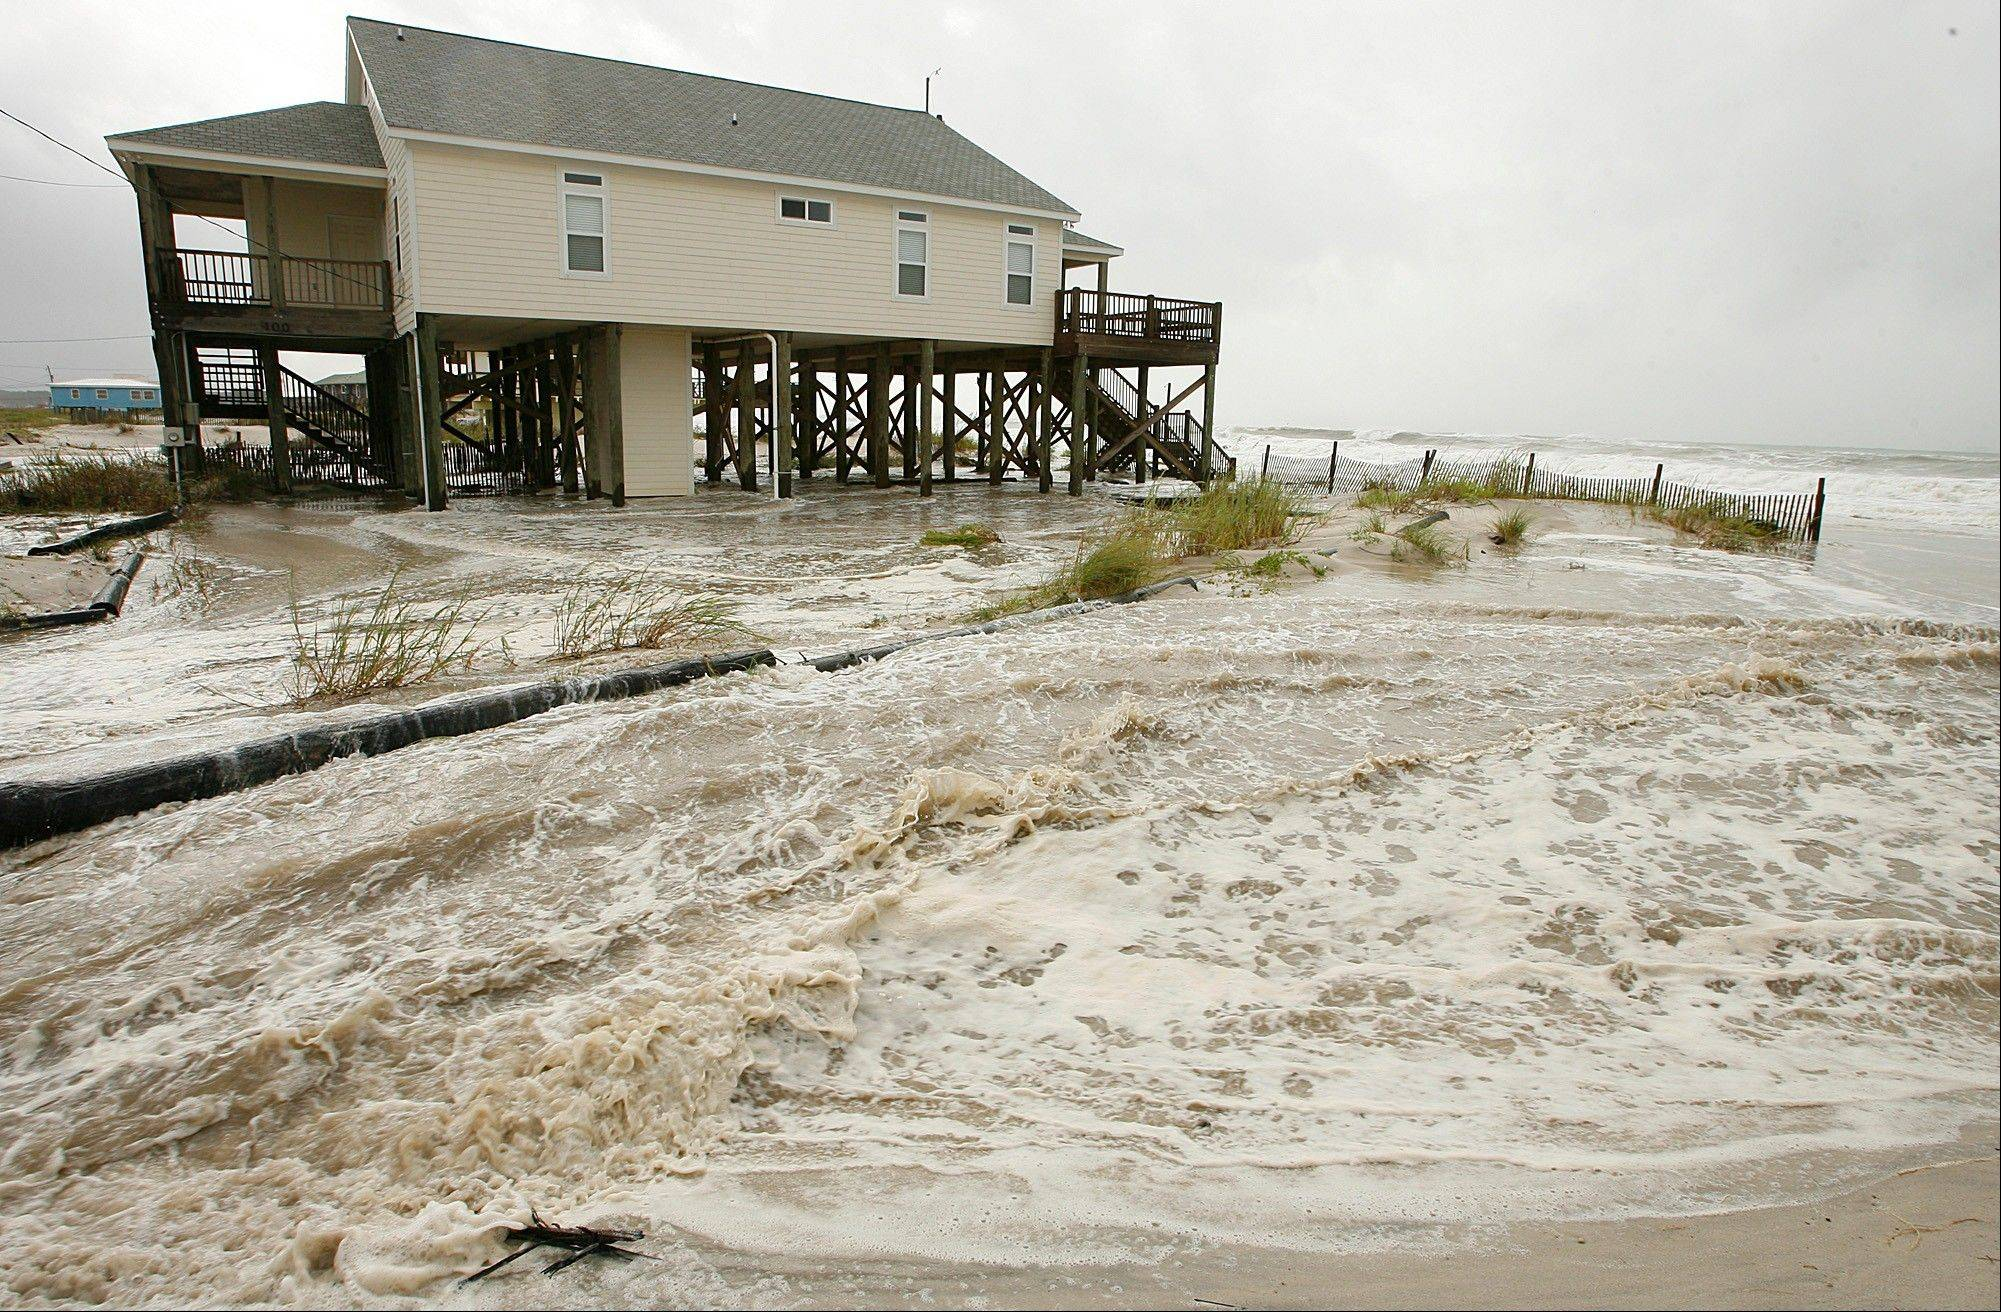 Waves crash Tuesday, Aug. 28, 2012, in Dauphin Island, Ala., as Isaac approaches the Gulf Coast.